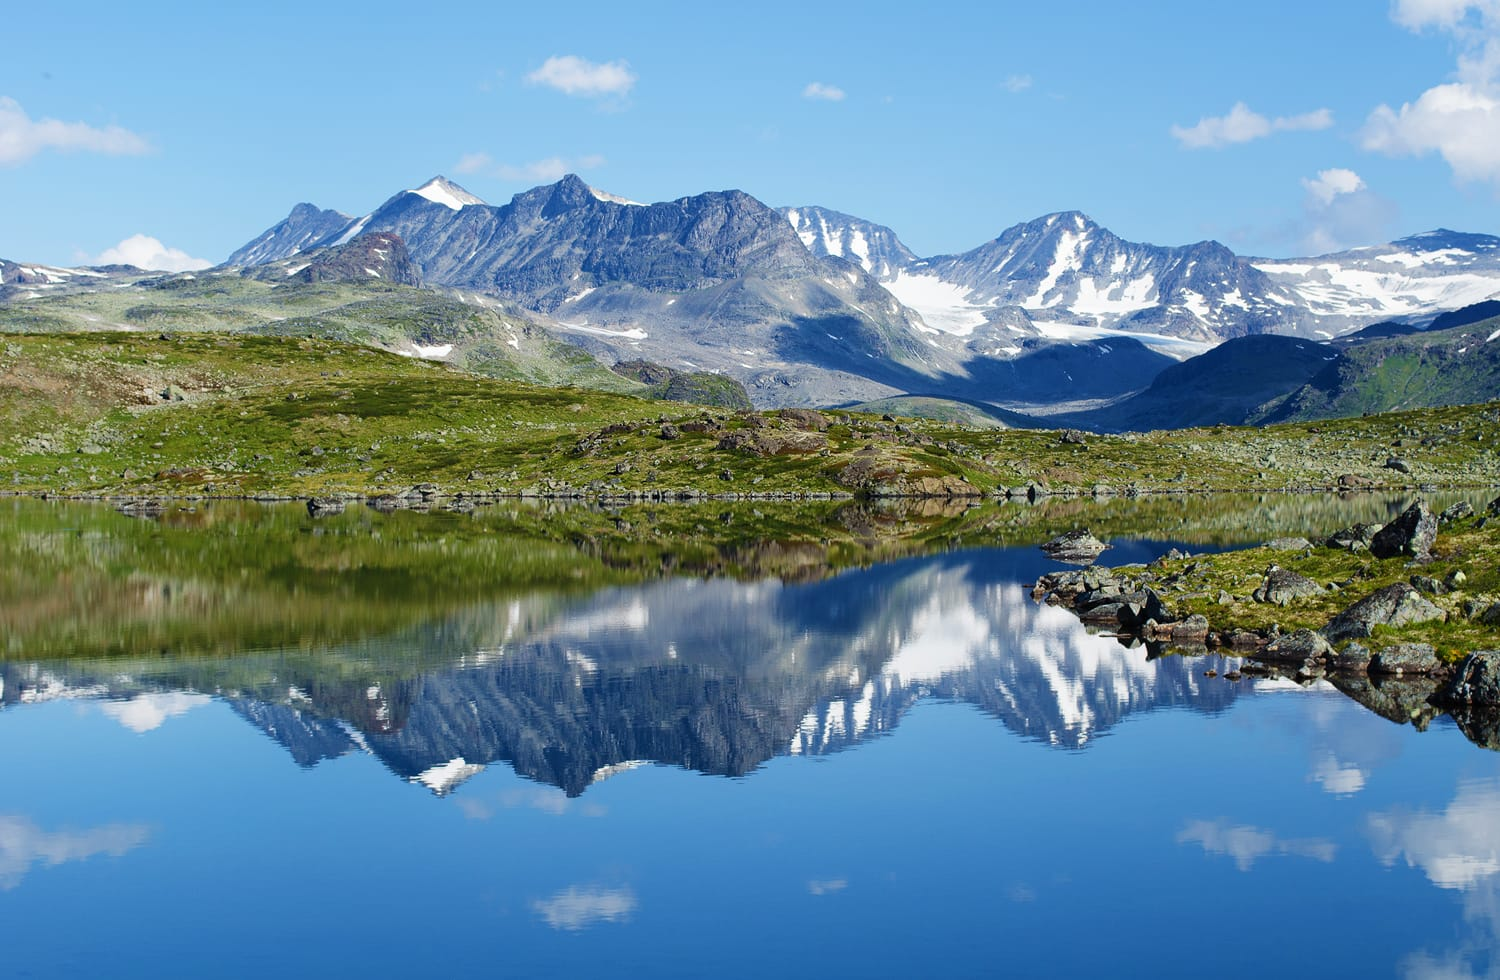 Reflection of mountain chain in a small lake in Jotunheimen national park in Norway.